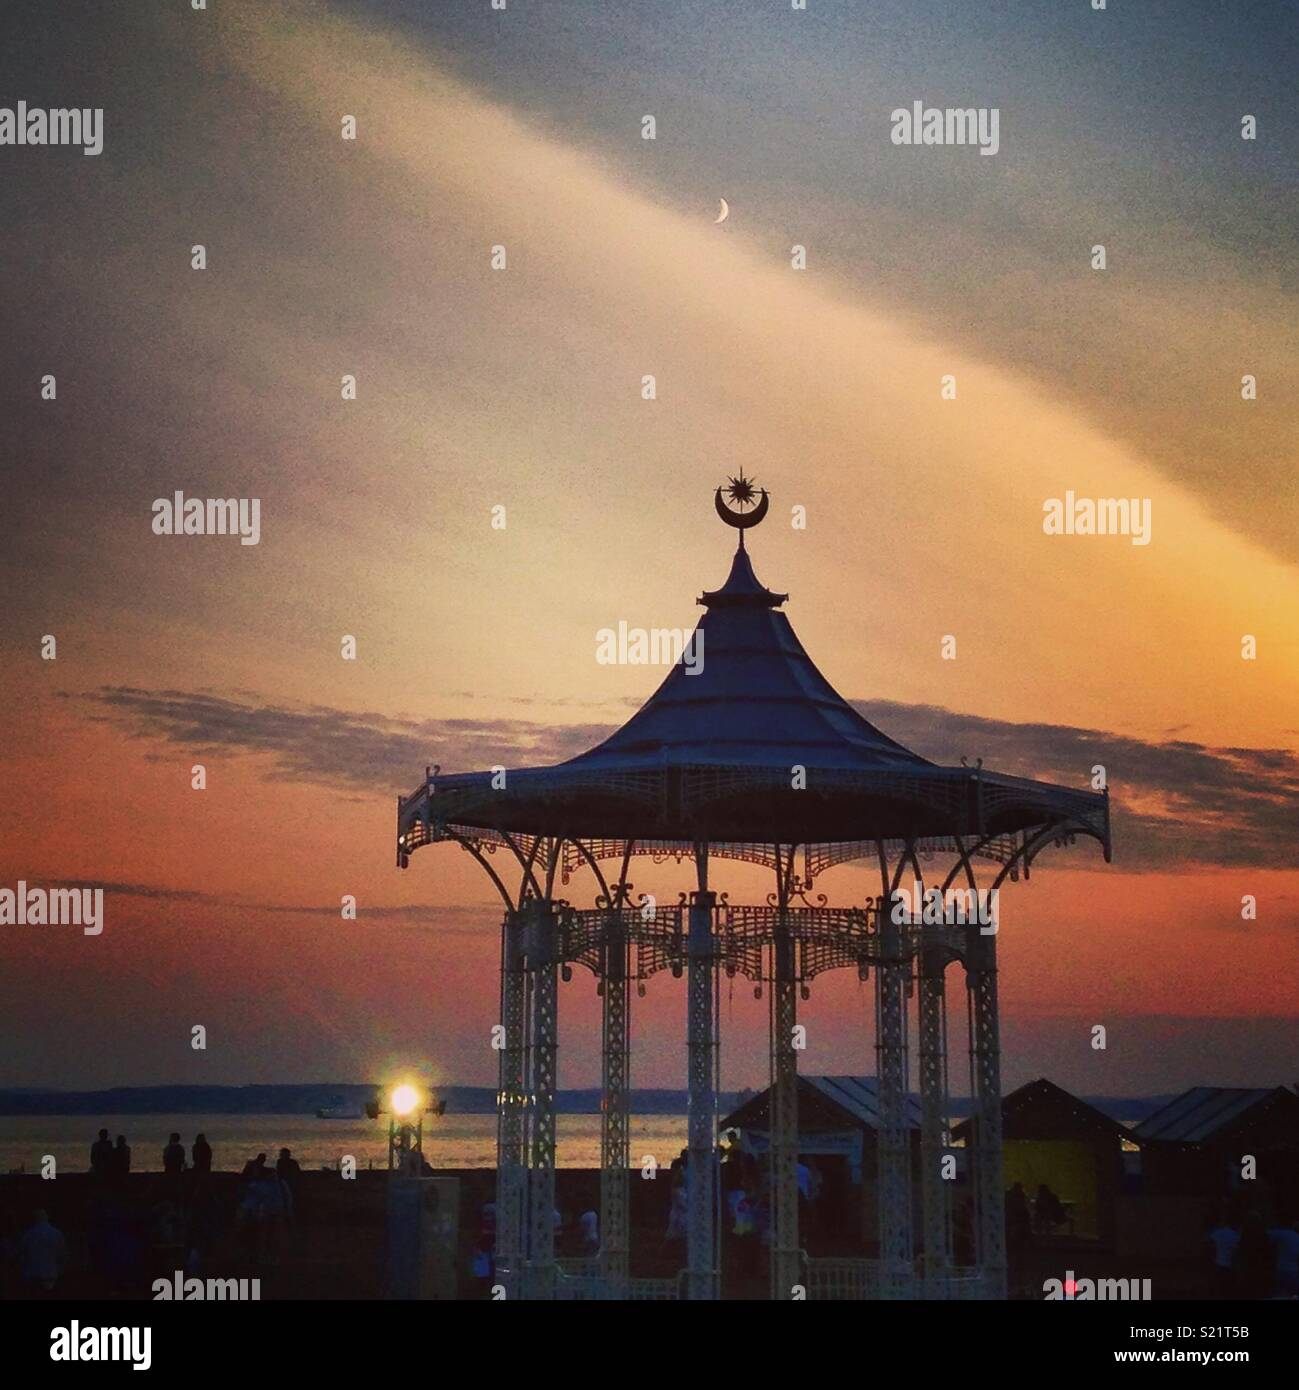 Bandstand at sunset - Stock Image